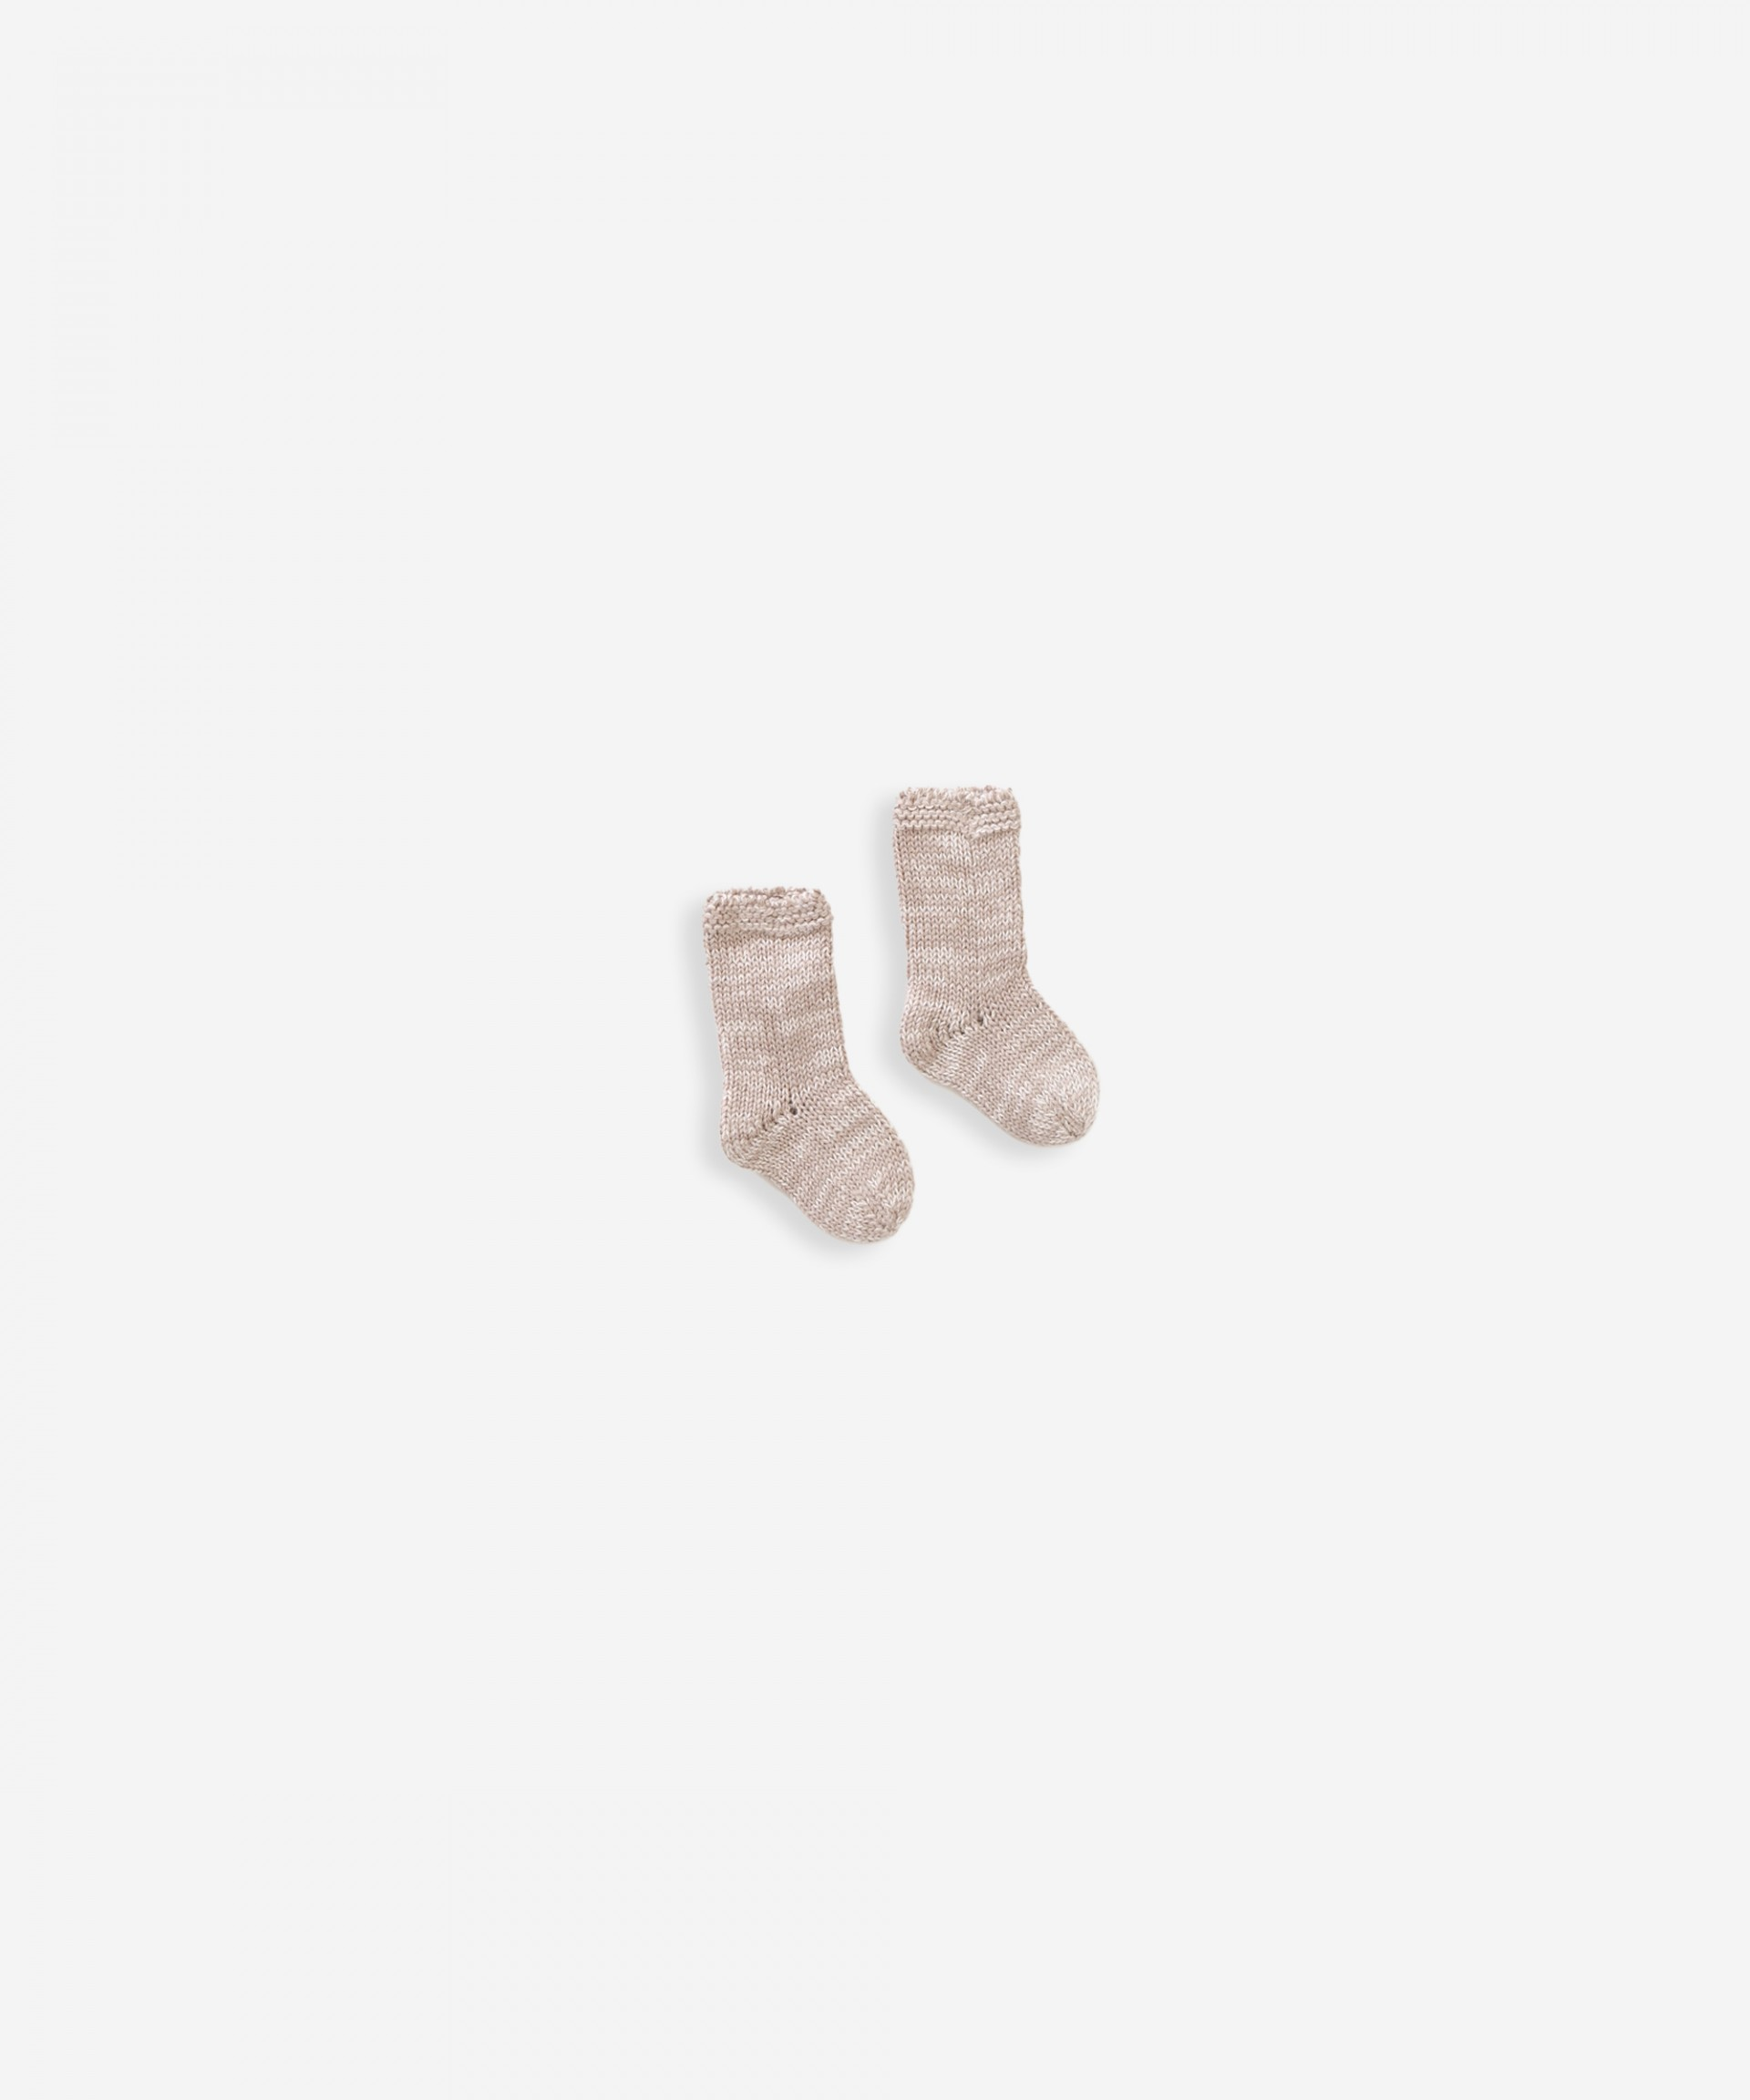 Knitted socks in organic cotton | Weaving